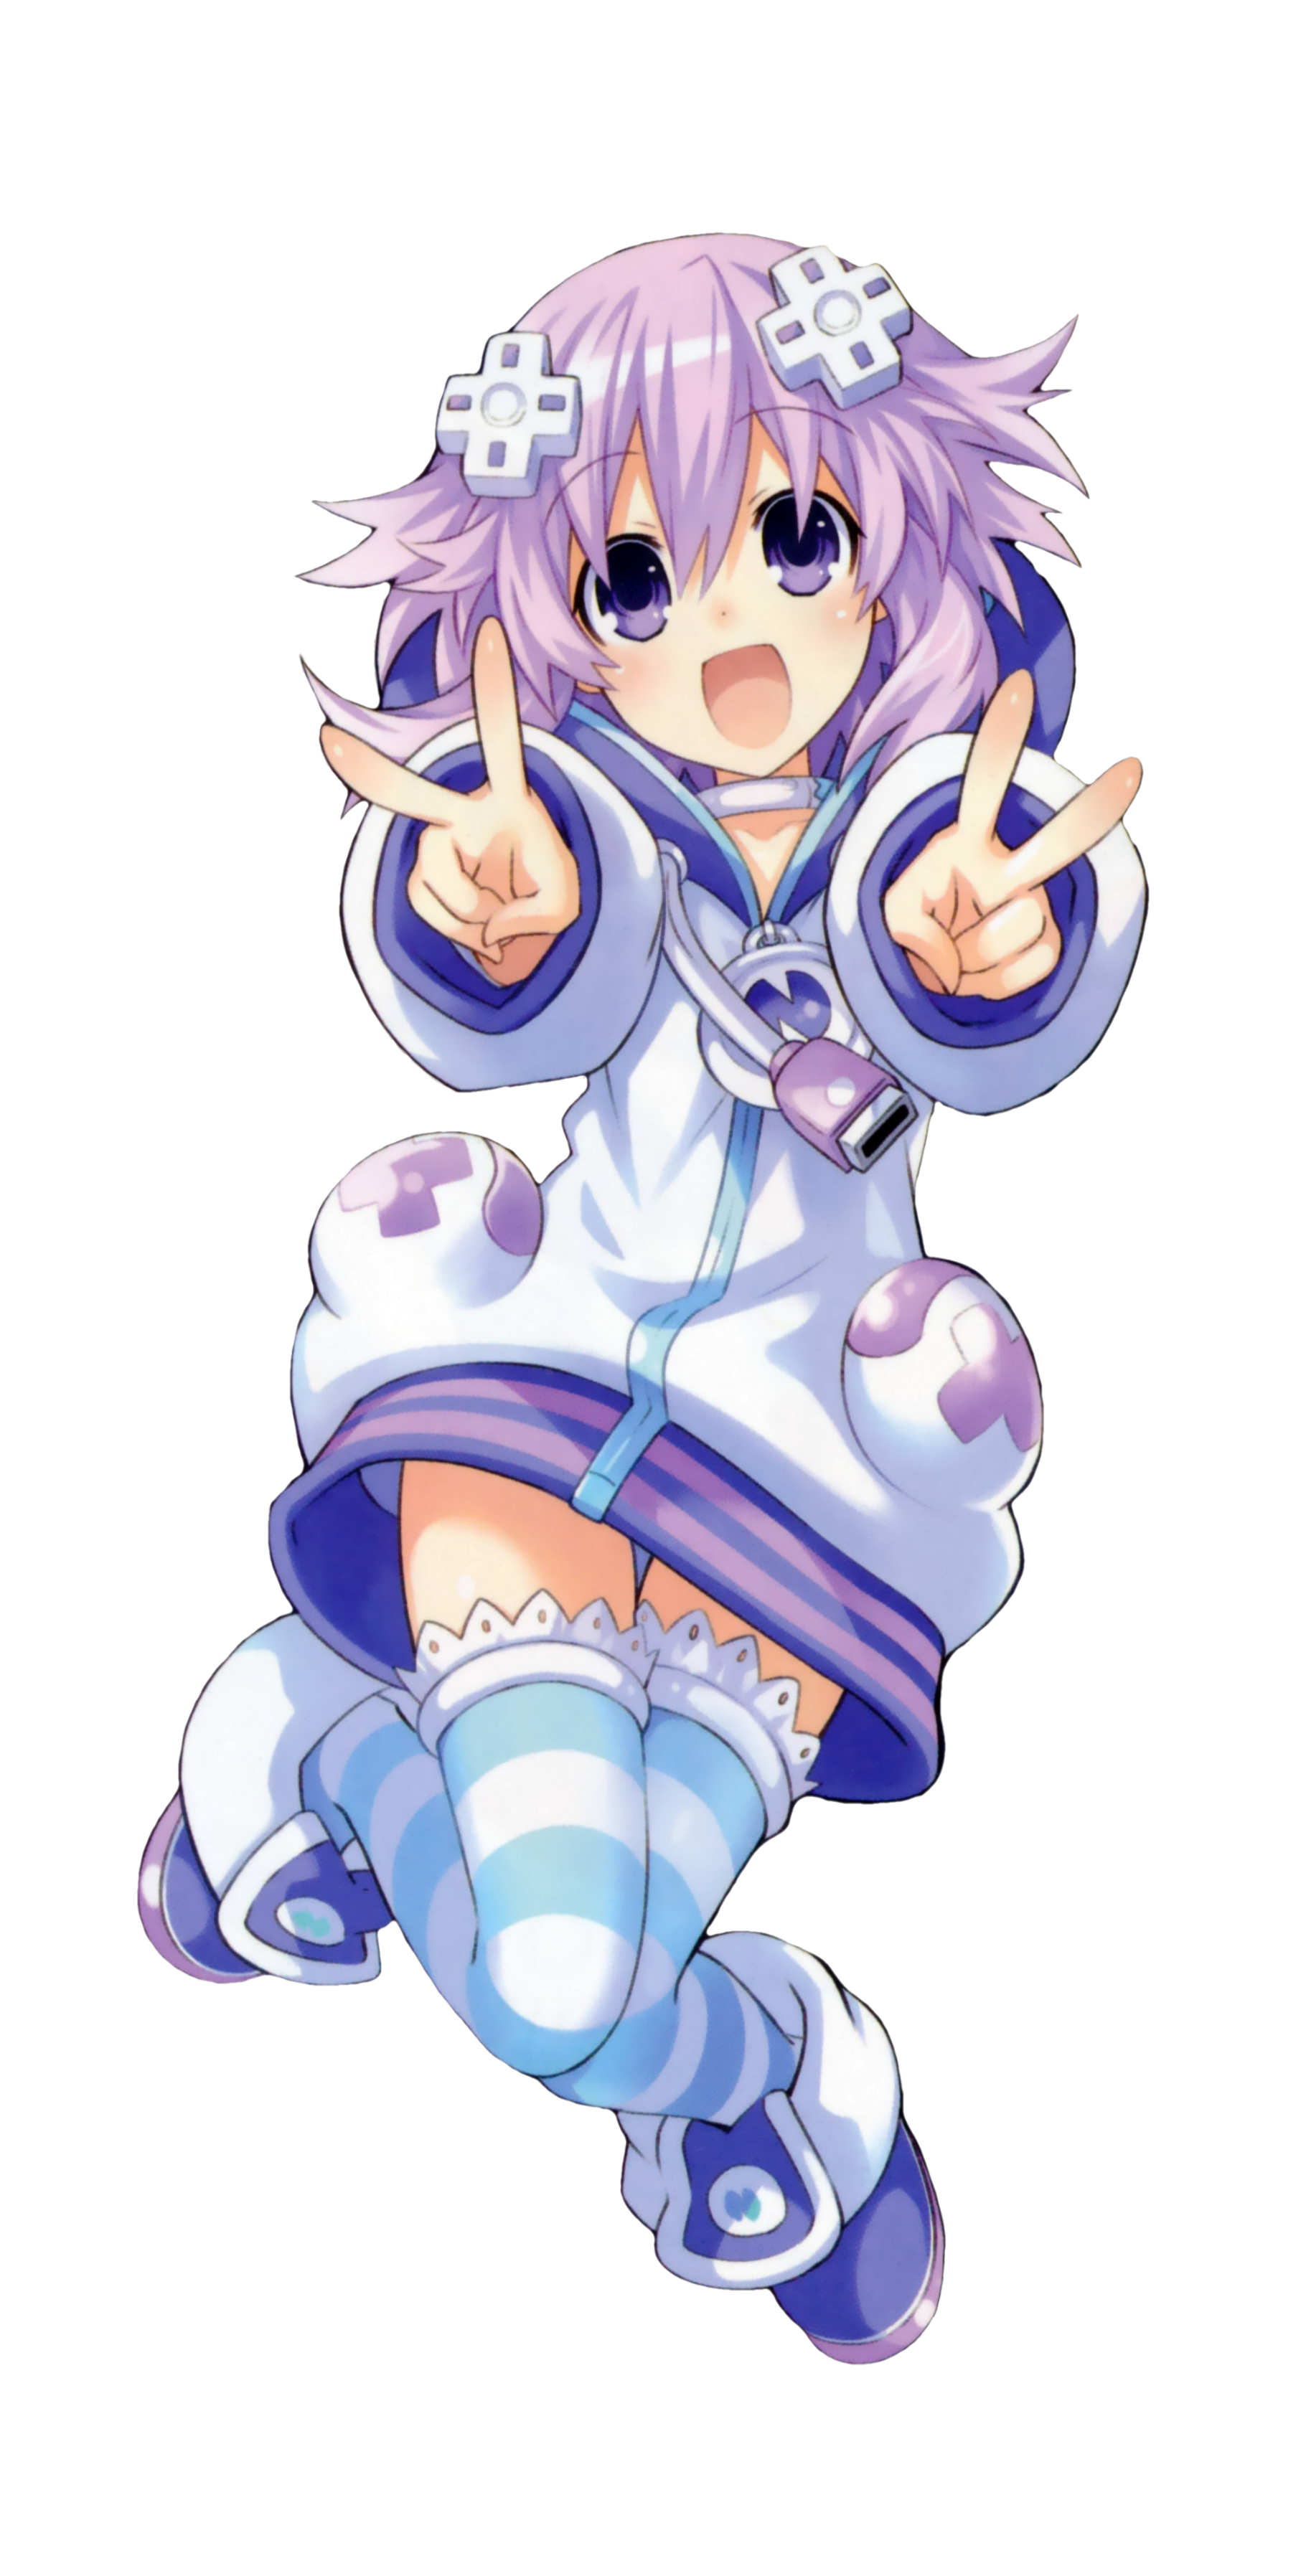 Neptune hyperdimension neptunia smug png. Another render scan gamindustri